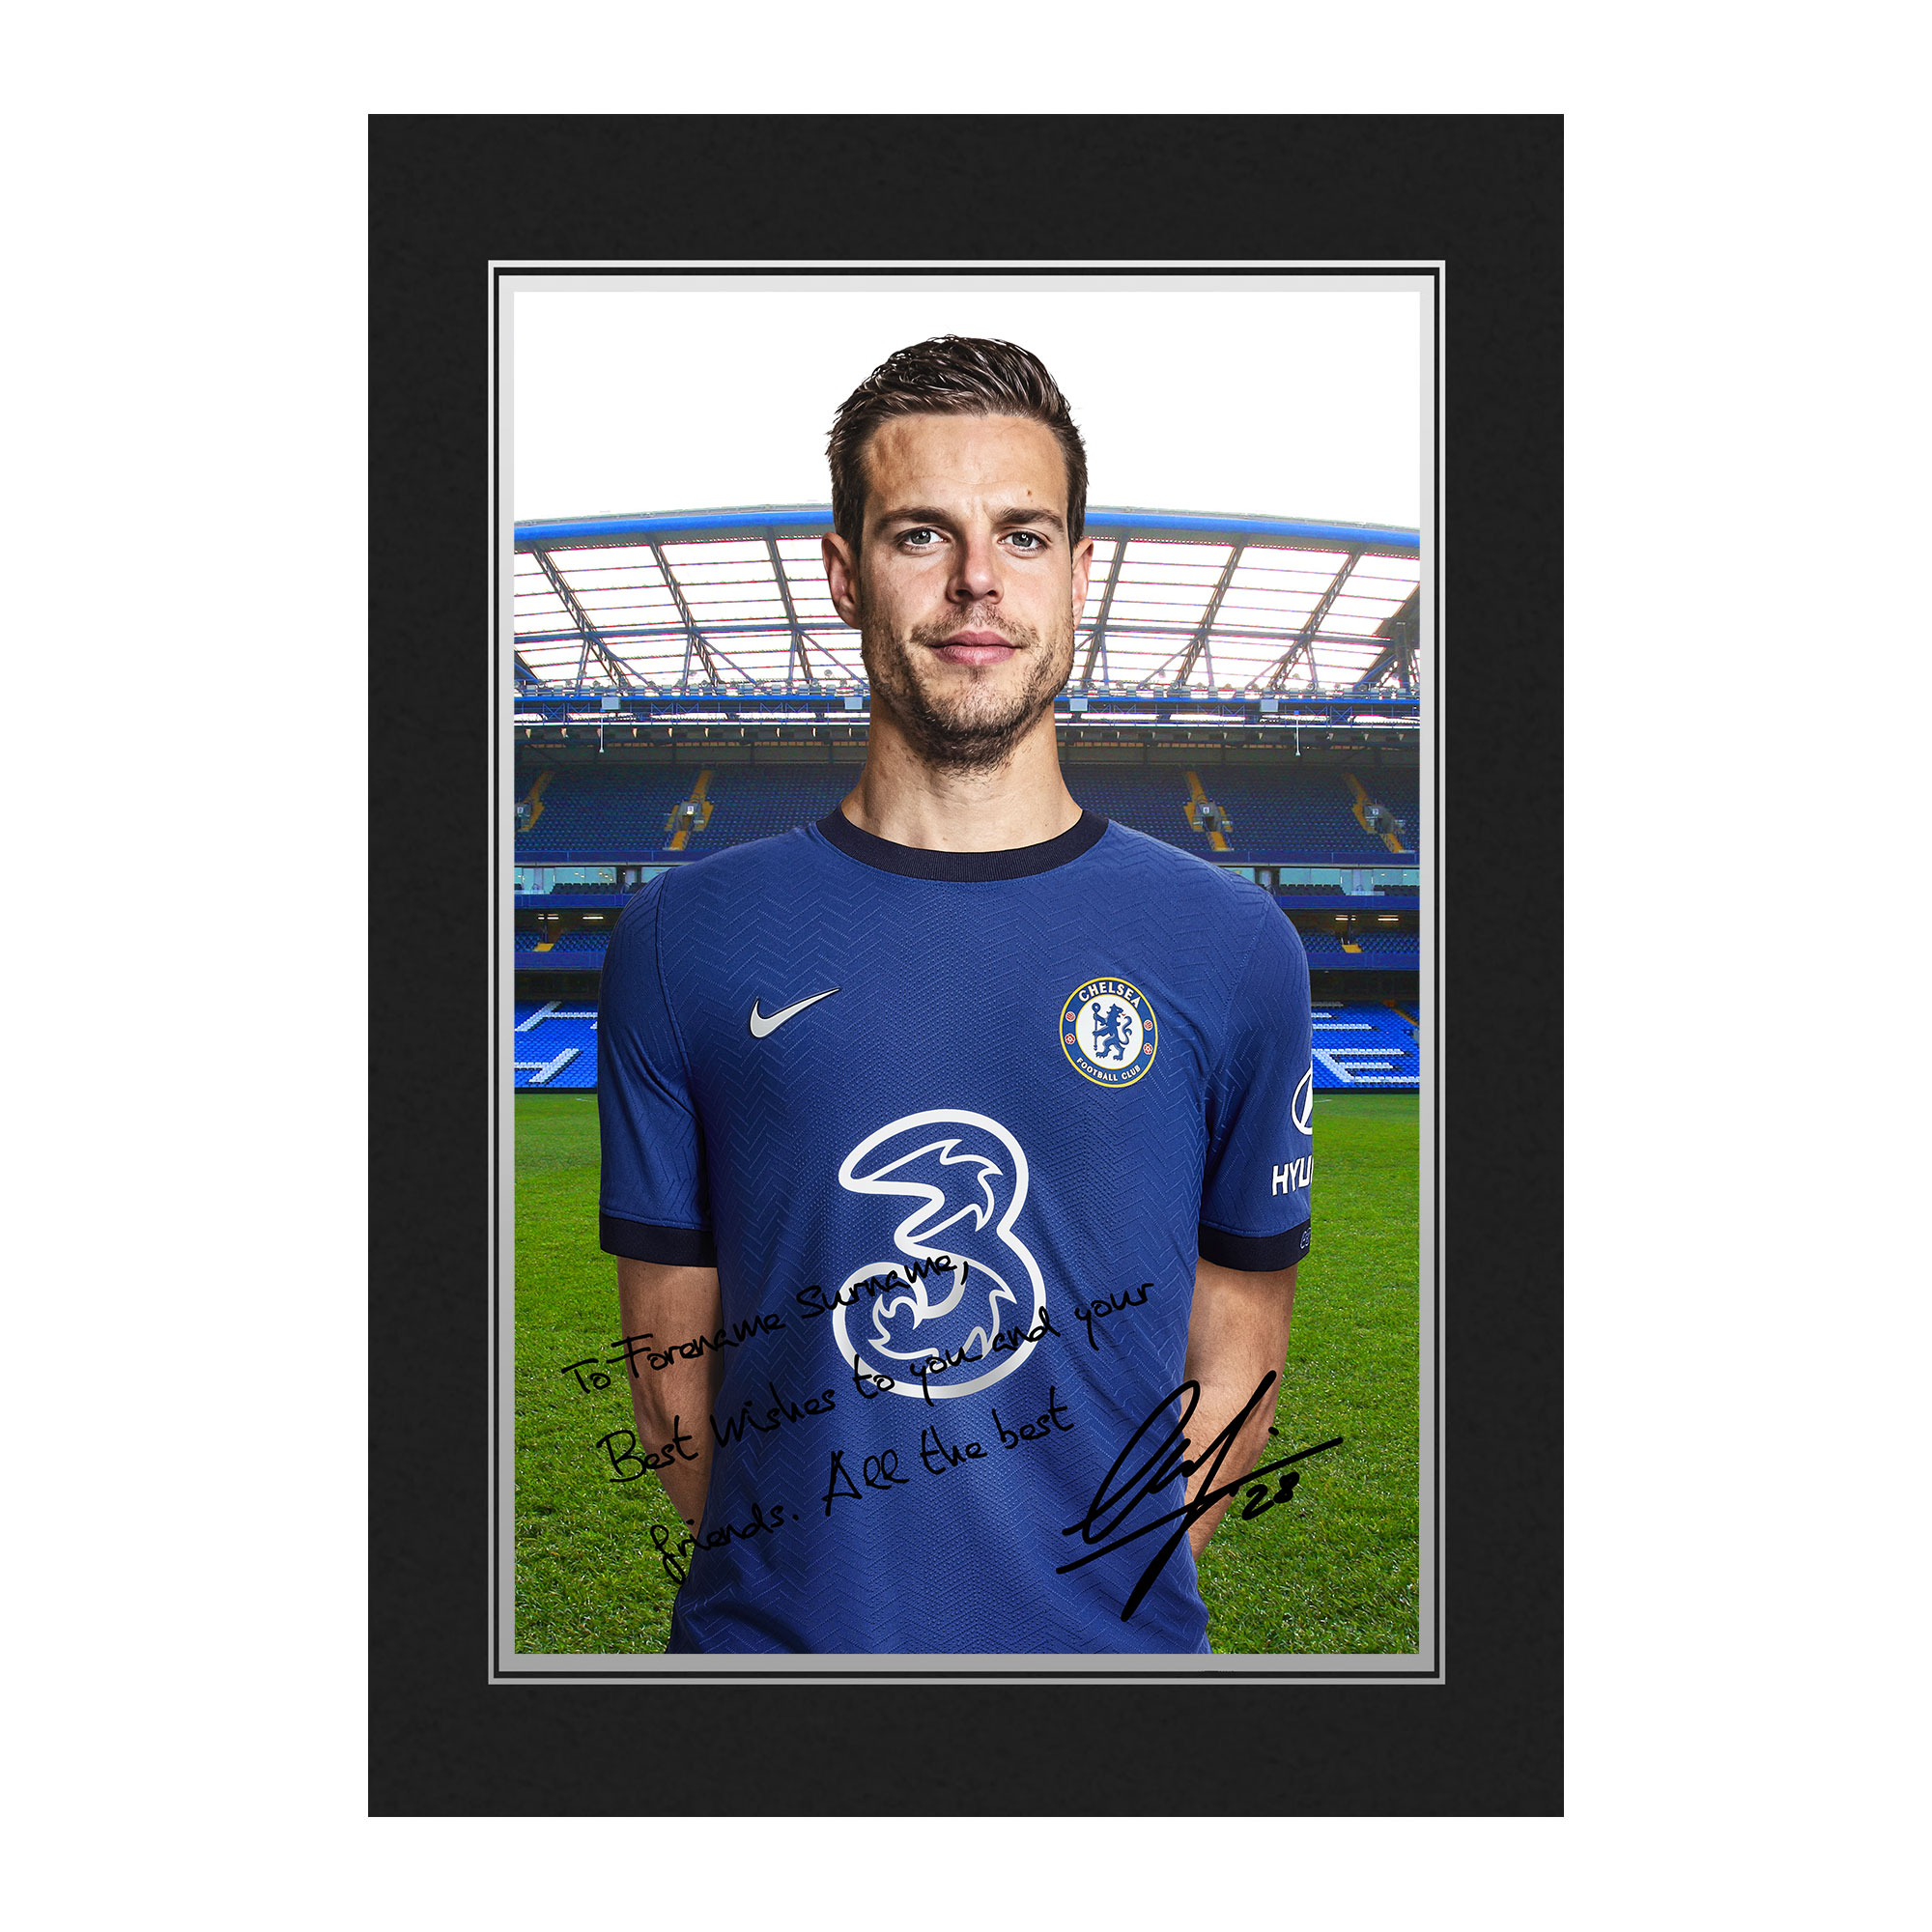 Chelsea FC Azpilicueta Autograph Photo Folder